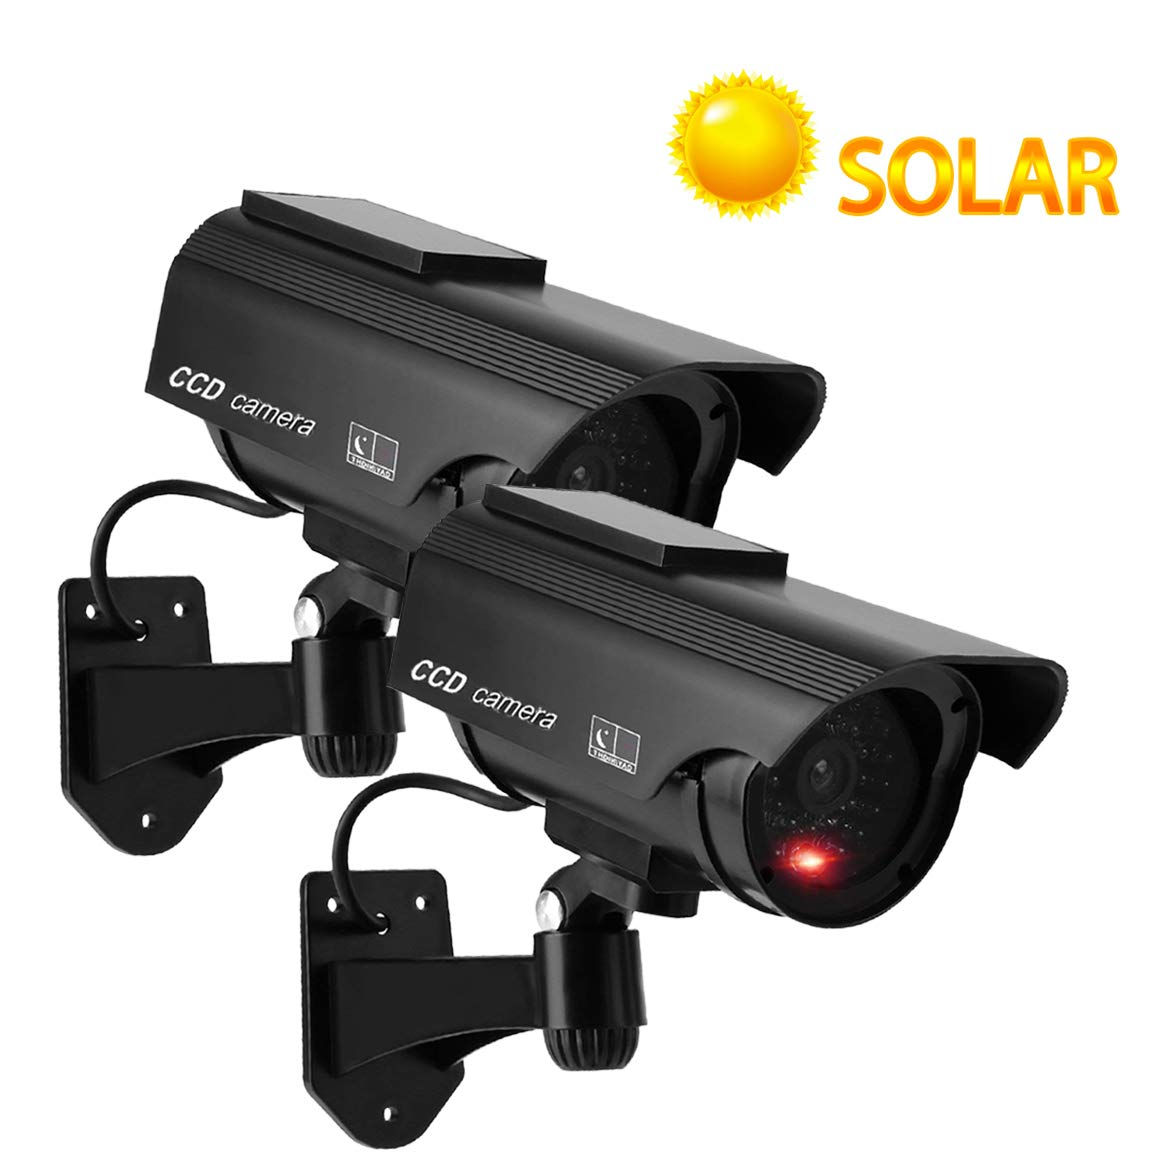 YSUCAU Solar Powered Bullet Dummy Fake Simulated Surveillance Security CCTV Dome Camera Indoor/Outdoor Use with Flashing Red LED Light & Warning Security Alert Sticker Decal by YSUCAU